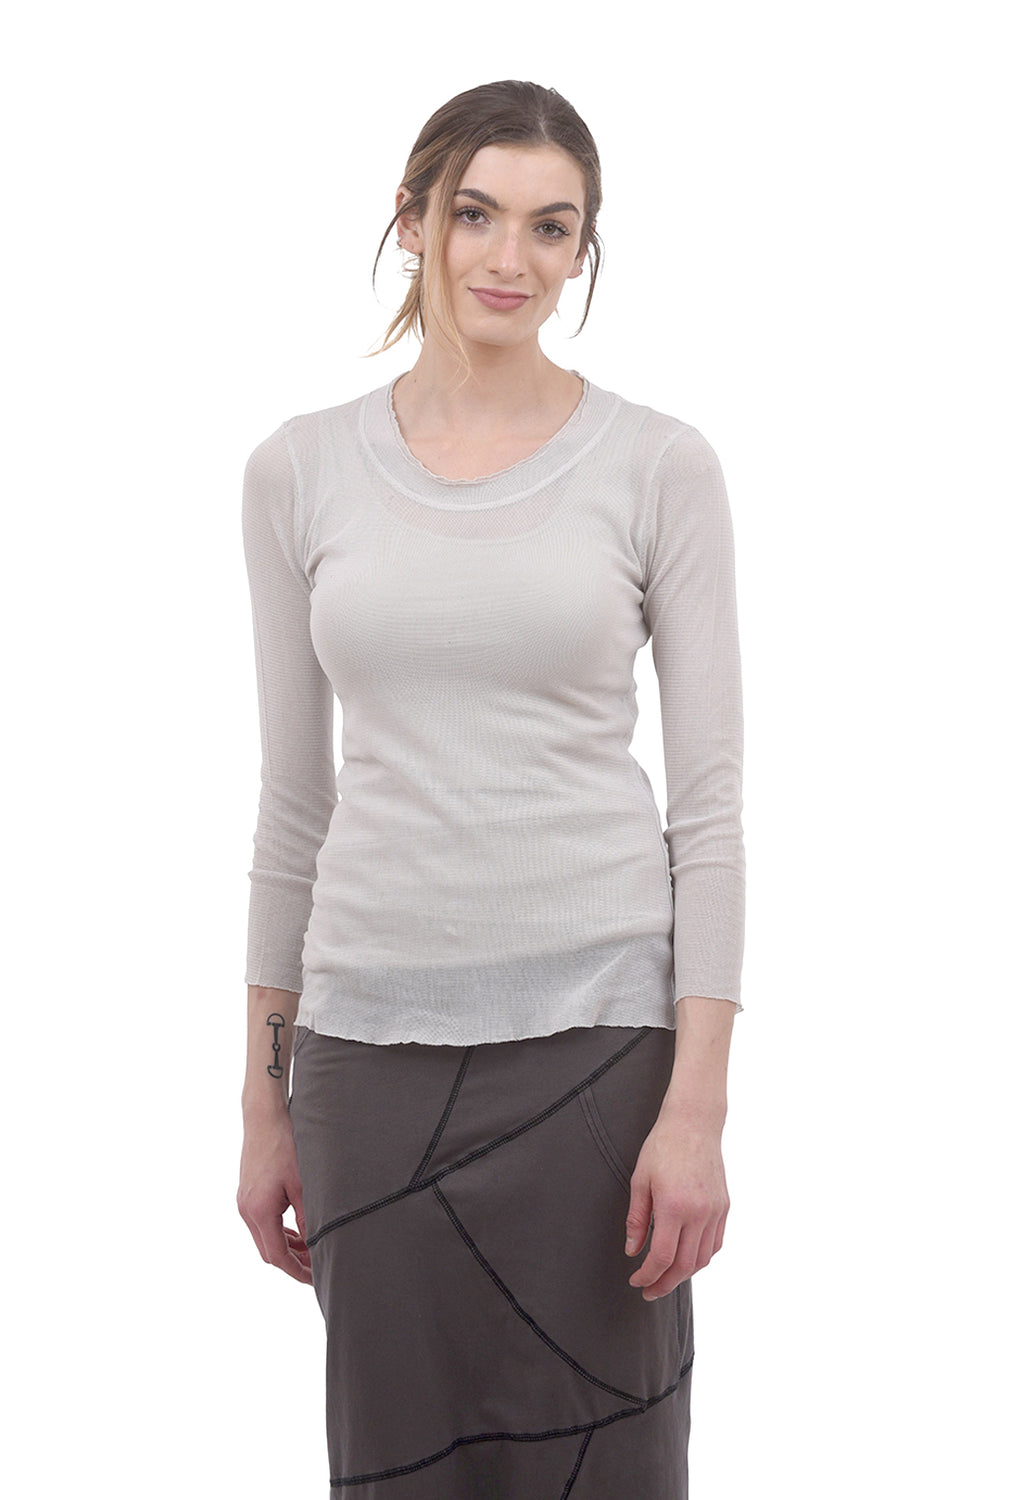 Cynthia Ashby CA Longer Mesh Tee, Autumn White